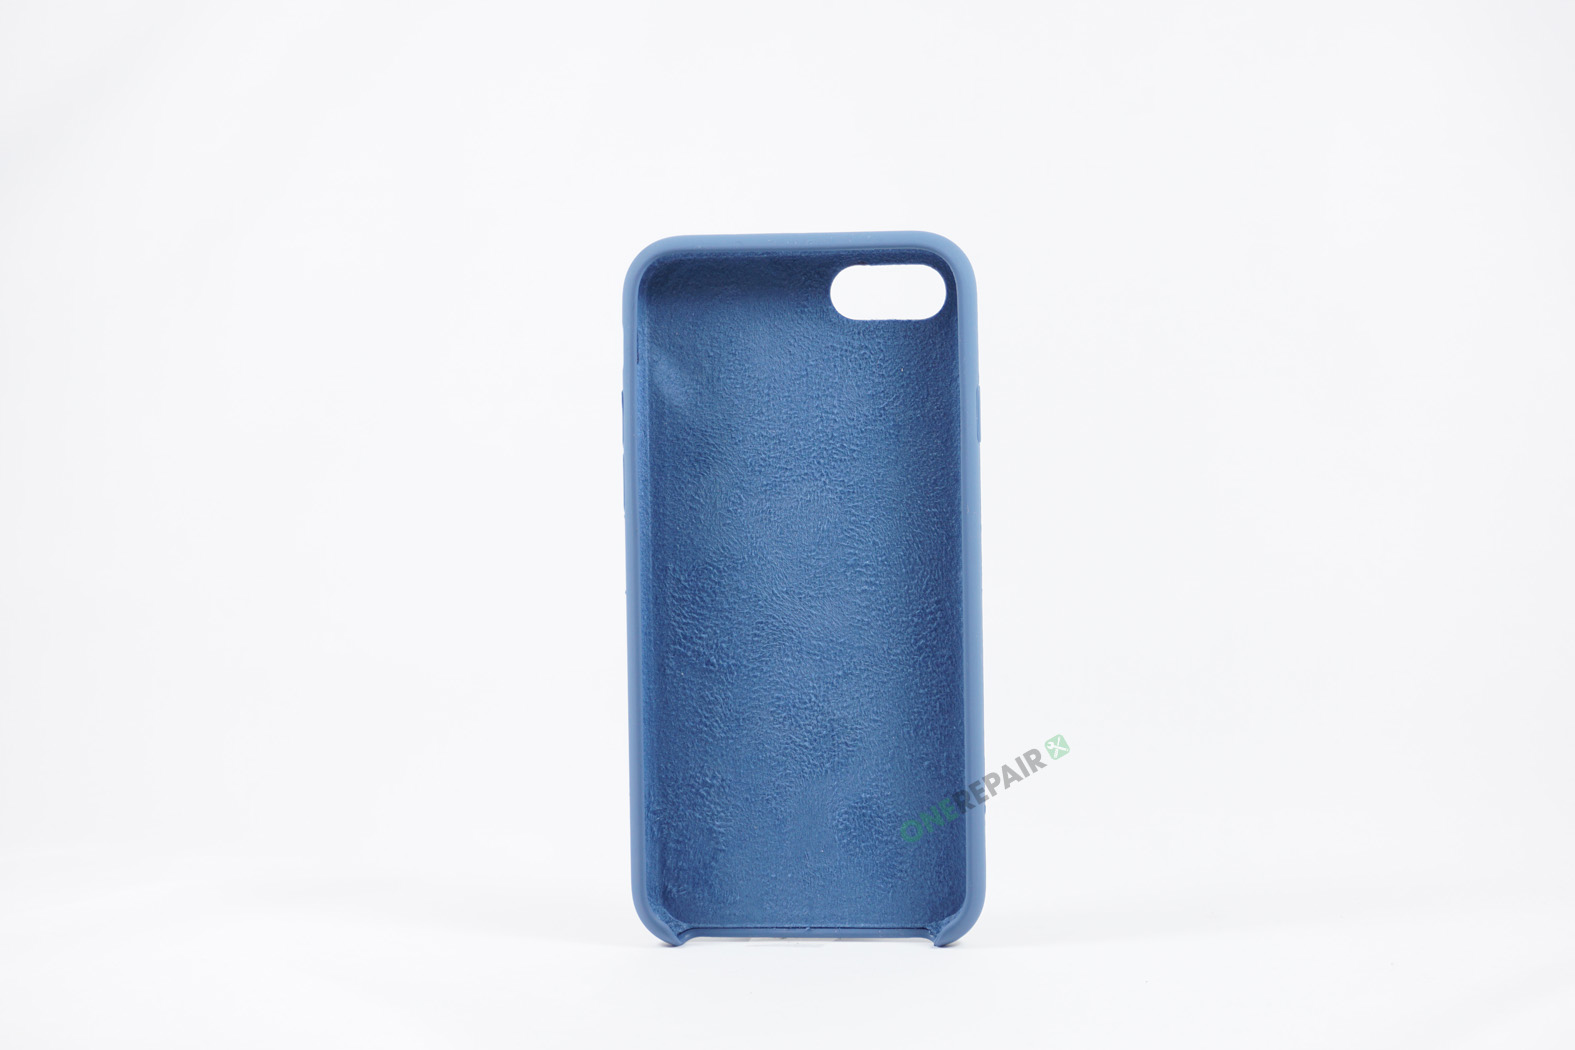 350752_iPhone_7_8_Silikonecover_Cover_Blaa_OneRepair_WM_00003